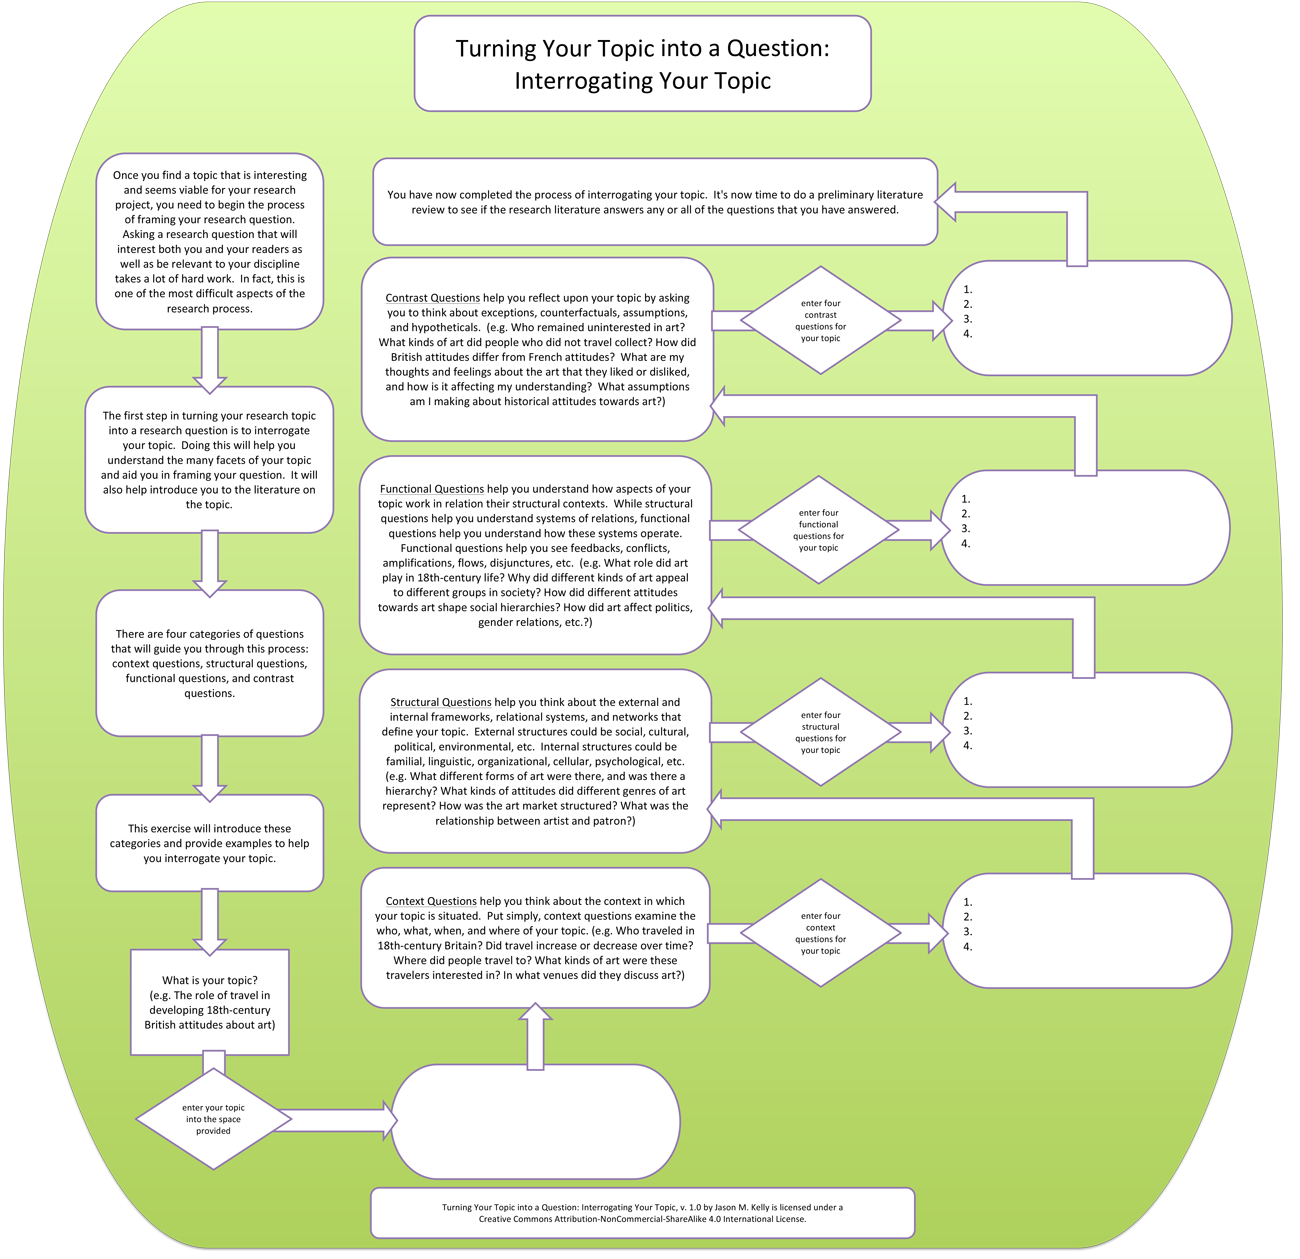 Flowchart: Turning Your Research Topic into a Research